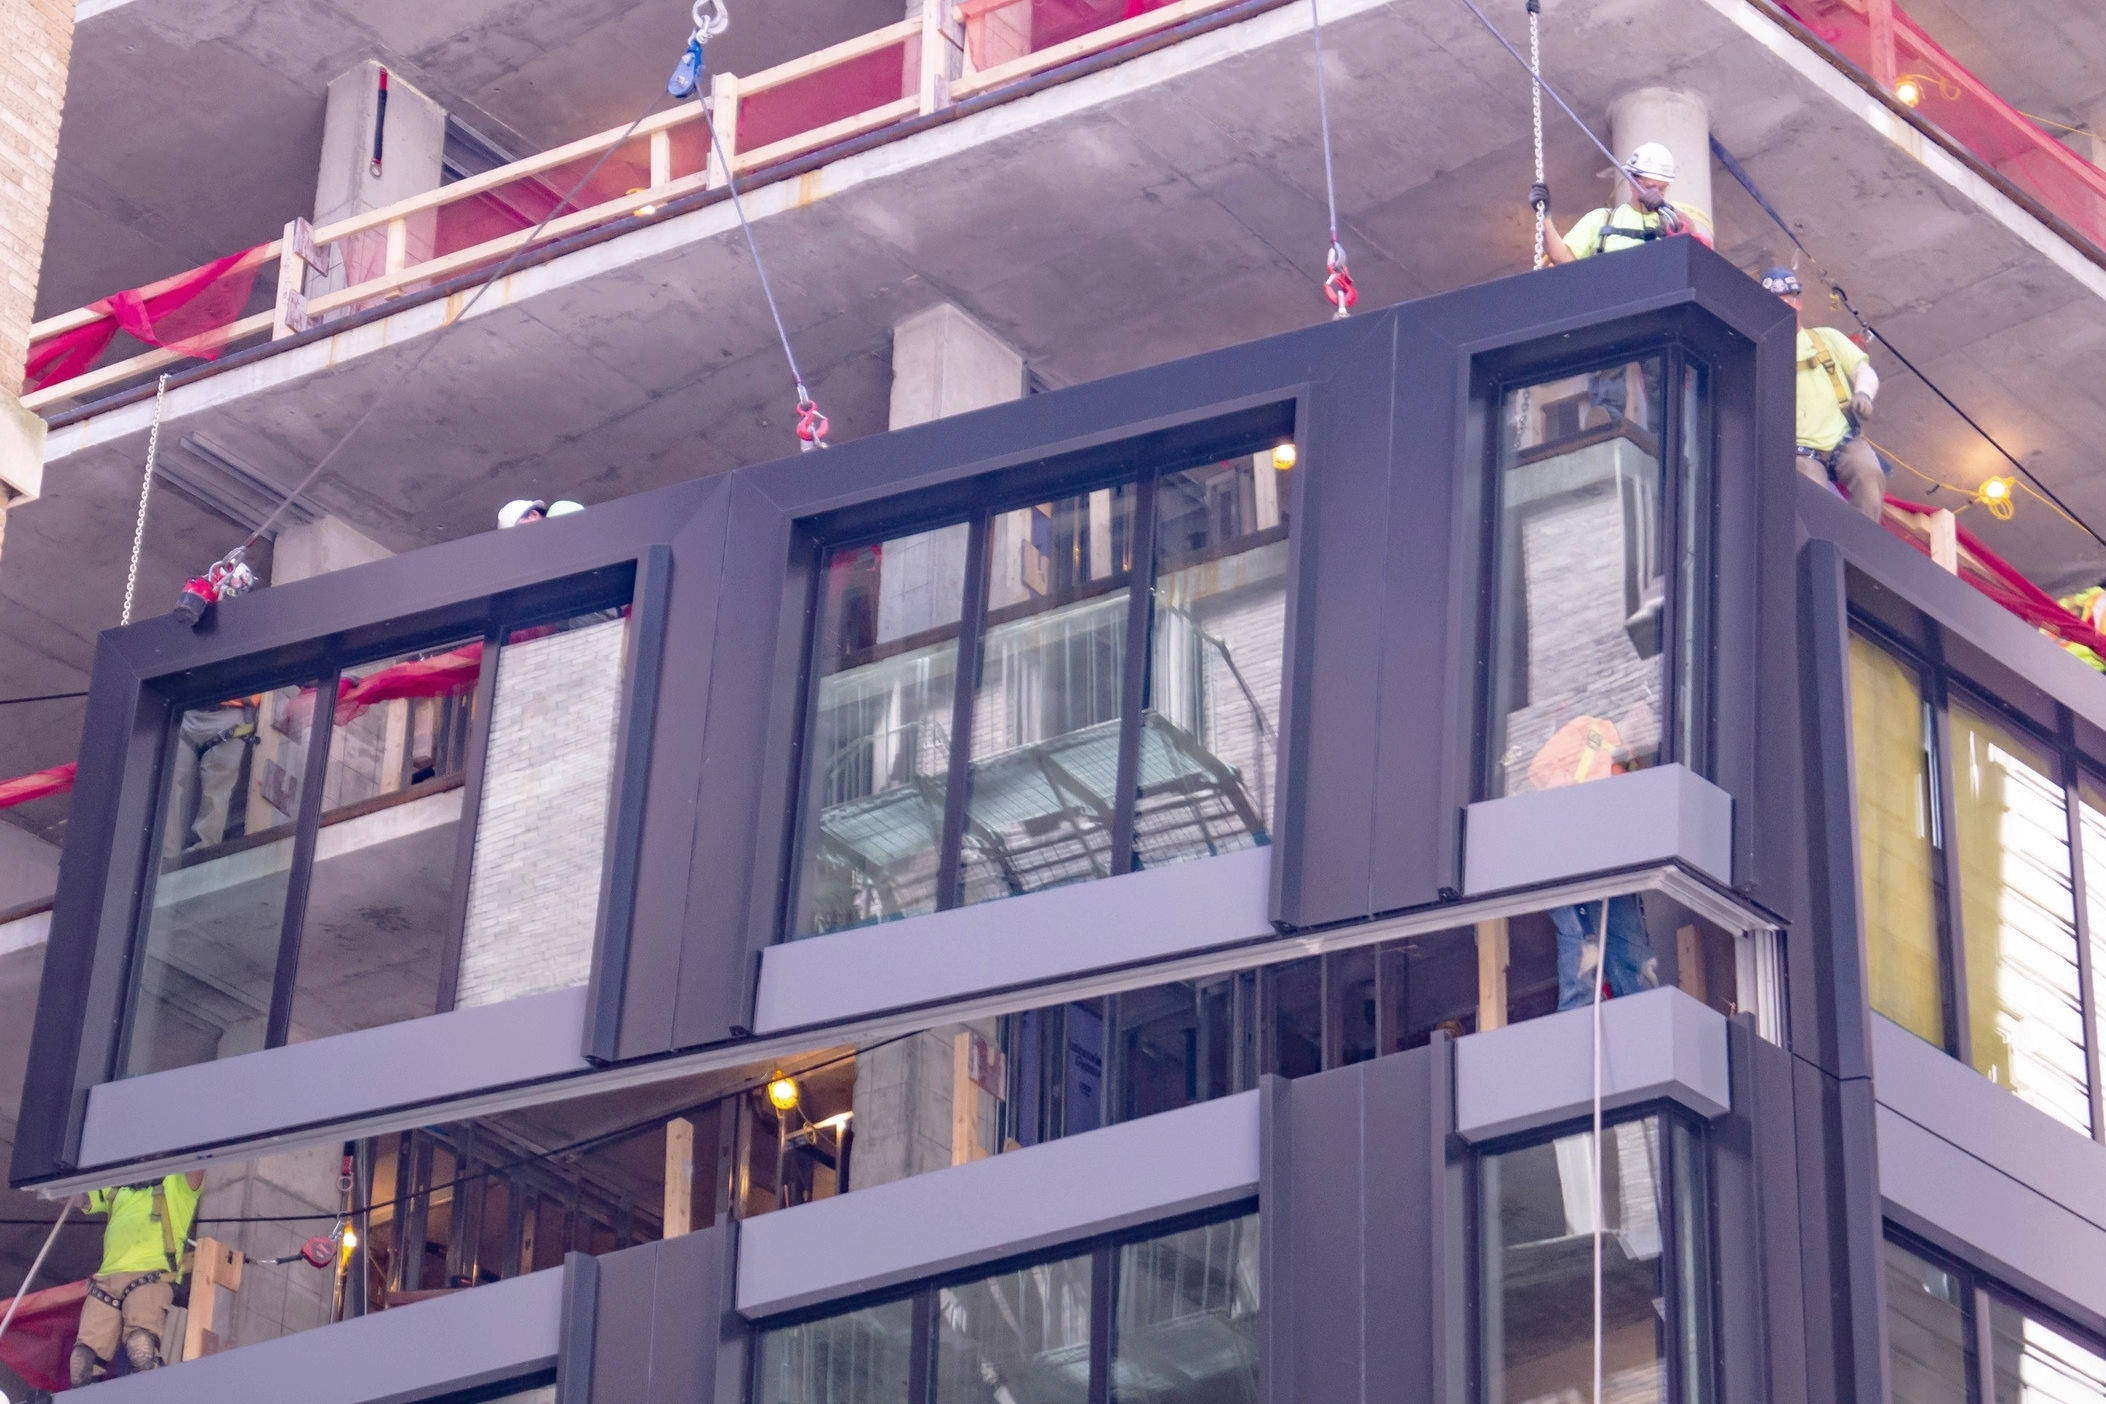 Megapanel Facade Systems - Learn More >